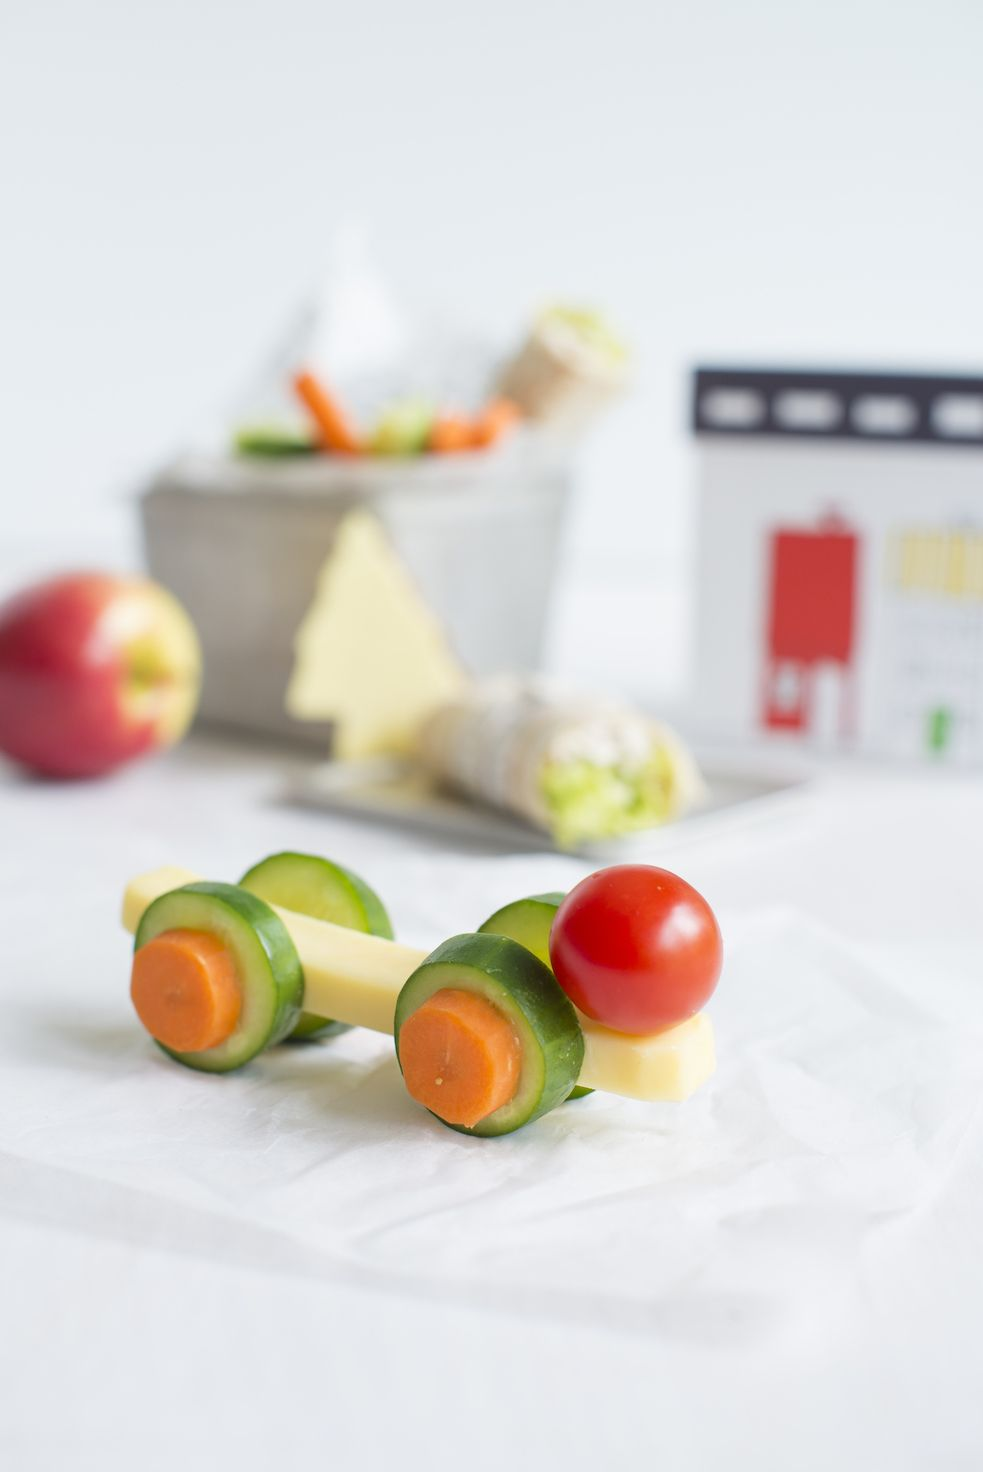 With cheese, carrots and cucumber already on his 'love 'list, this fun little car racer could be just the thing to encourage George to try tomatoes in his lunchbox at preschool tomorrow.  For more new back to school recipe ideas and lunchbox prep timesaving ideas download our FREE ebook today. http://onehandedcooks.com.au/2017-back-to-school-recipe-ebook/